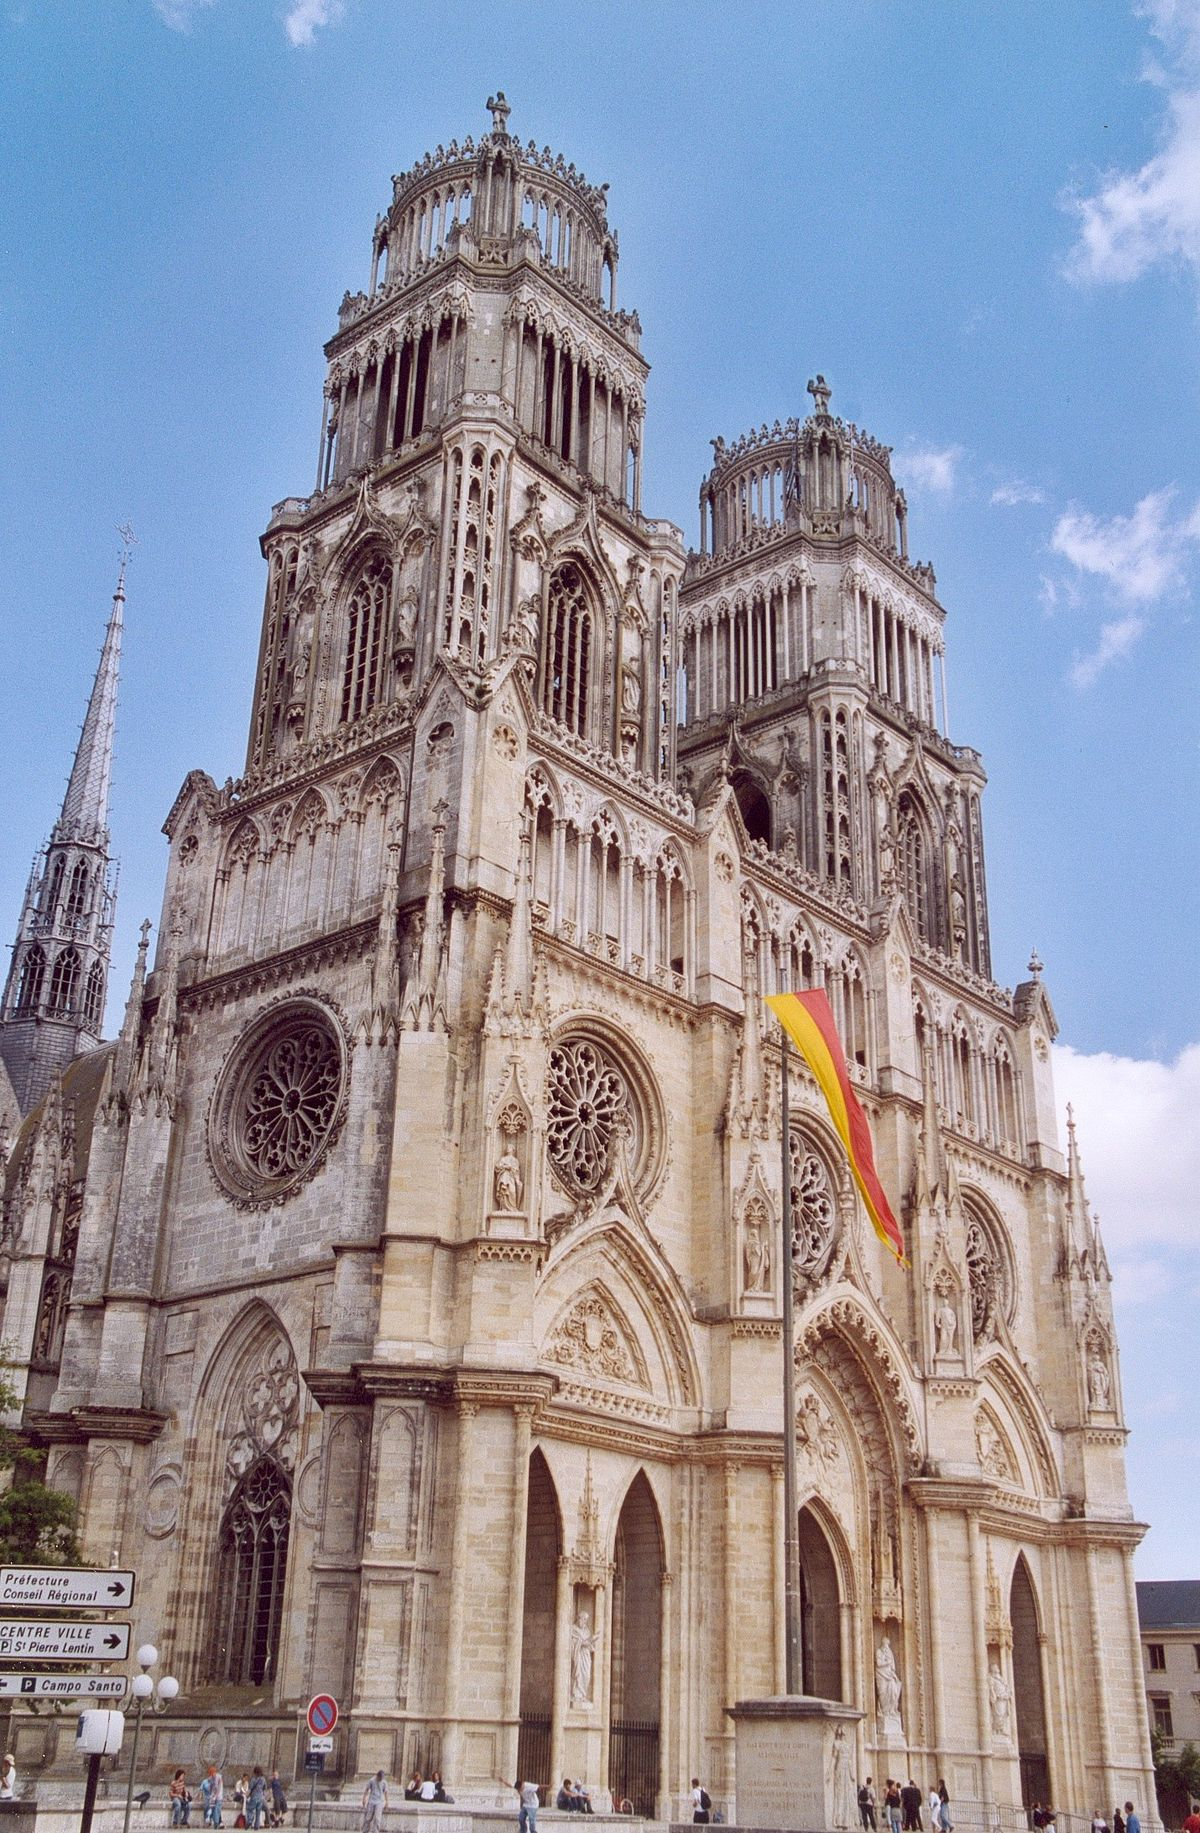 france orleans churches wikipedia catholic roman church cathedral cathedrale buildings diocese catholique francais